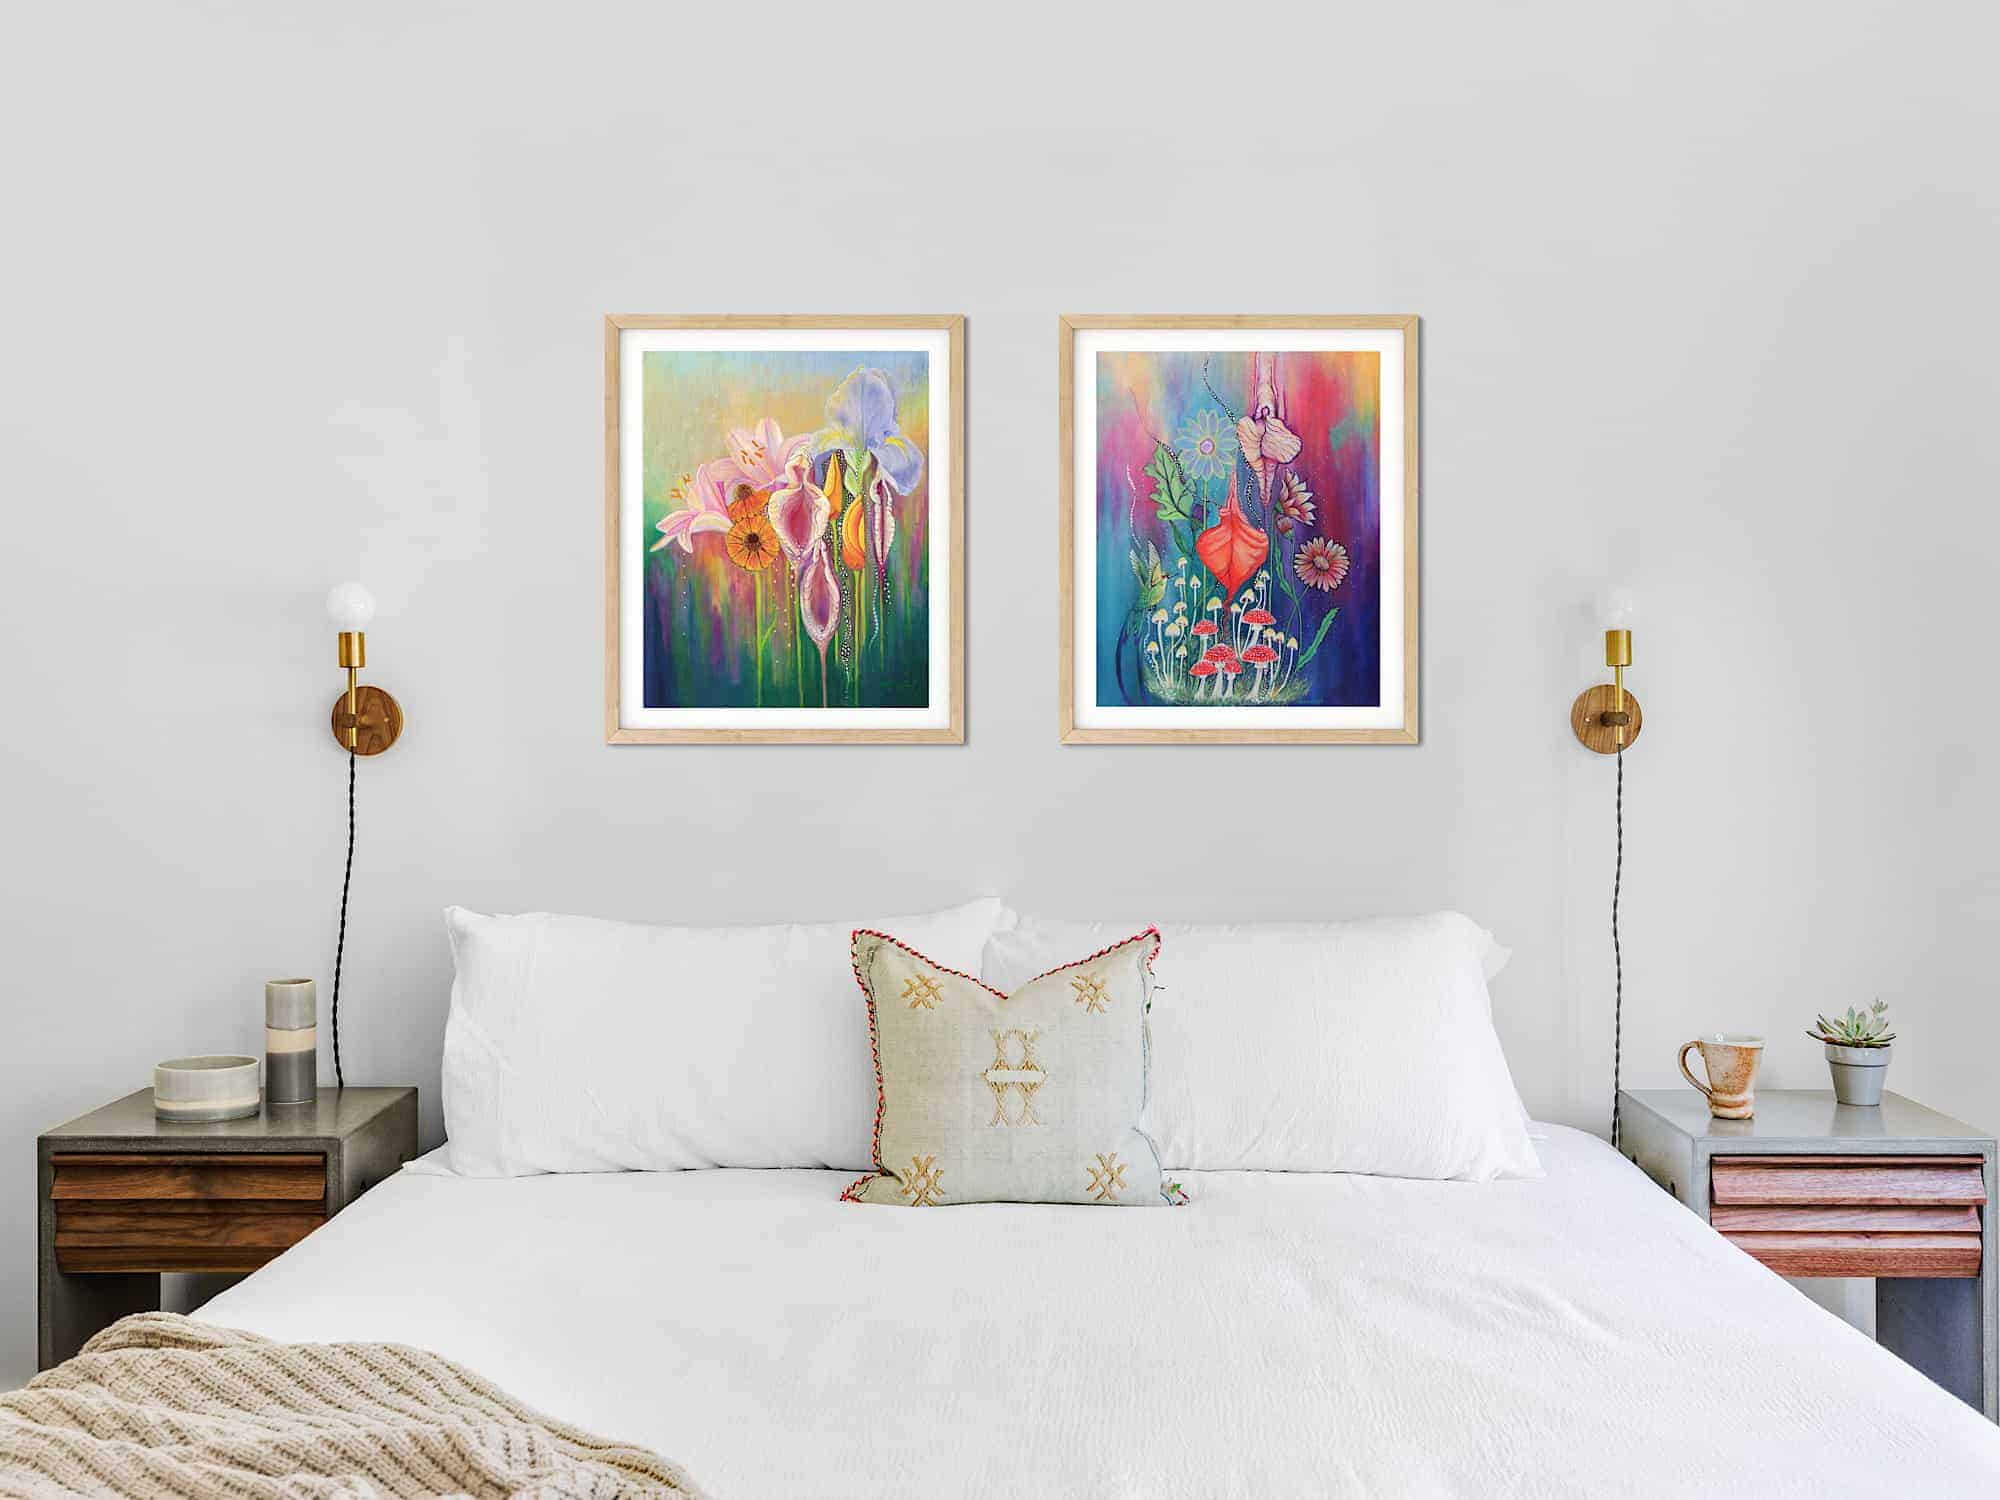 Yoni nectar and Procreate paintings hanging above a bed